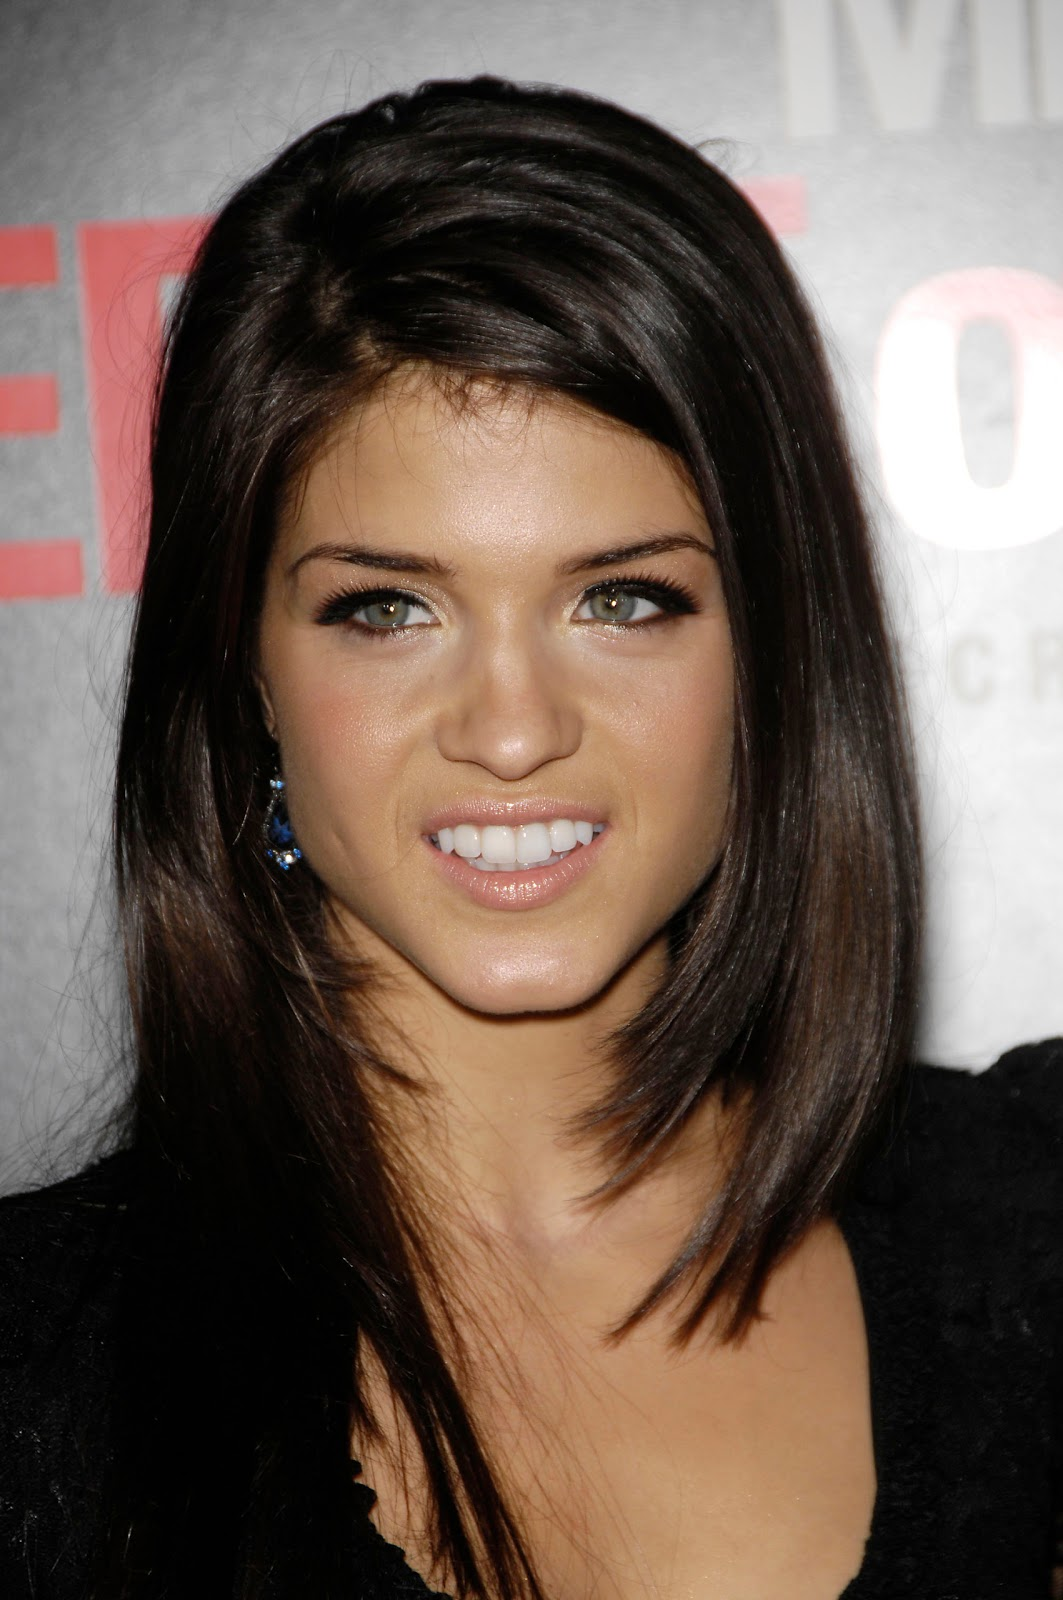 Marie Avgeropoulos iamAvgeropoulos ) Twitter Marie Avgeropoulos - Instagram Who is, marie Avgeropoulos?